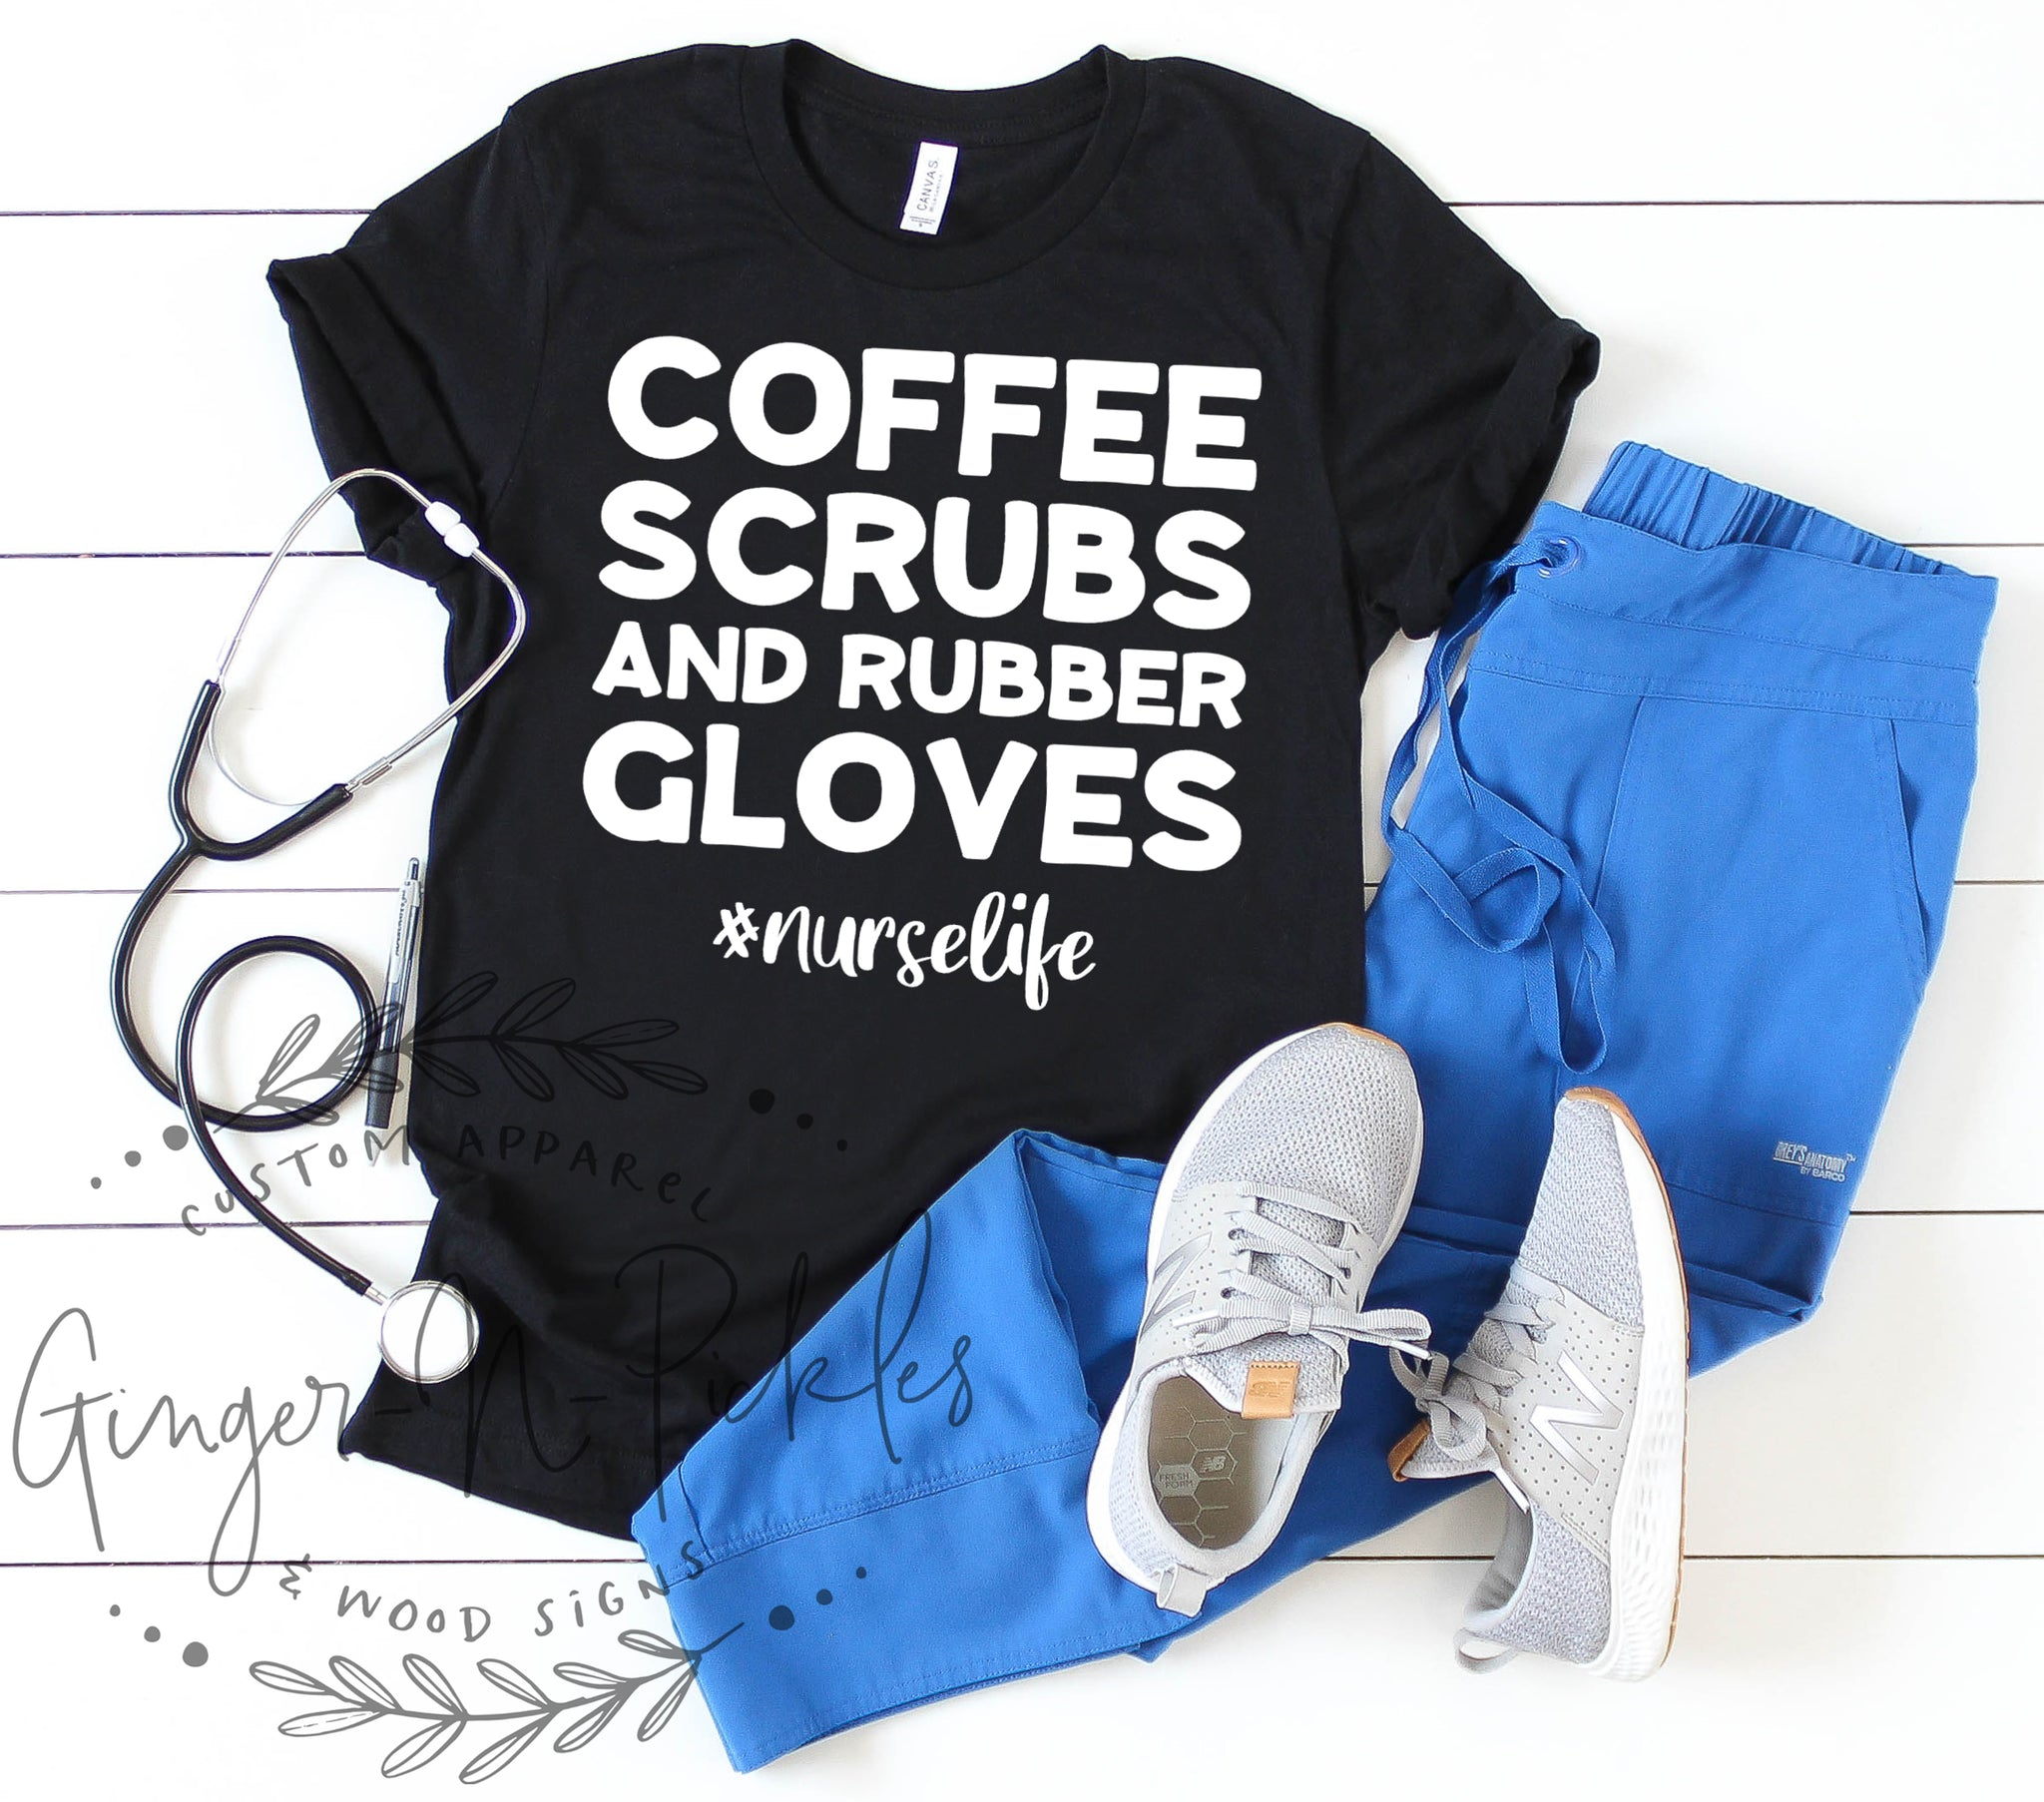 Coffee Scrubs and Rubber Gloves #nurselife Unisex Style Short Sleeve Shirt, Coffee Scrubs Rubber Gloves Shirt Nurselife Shirt